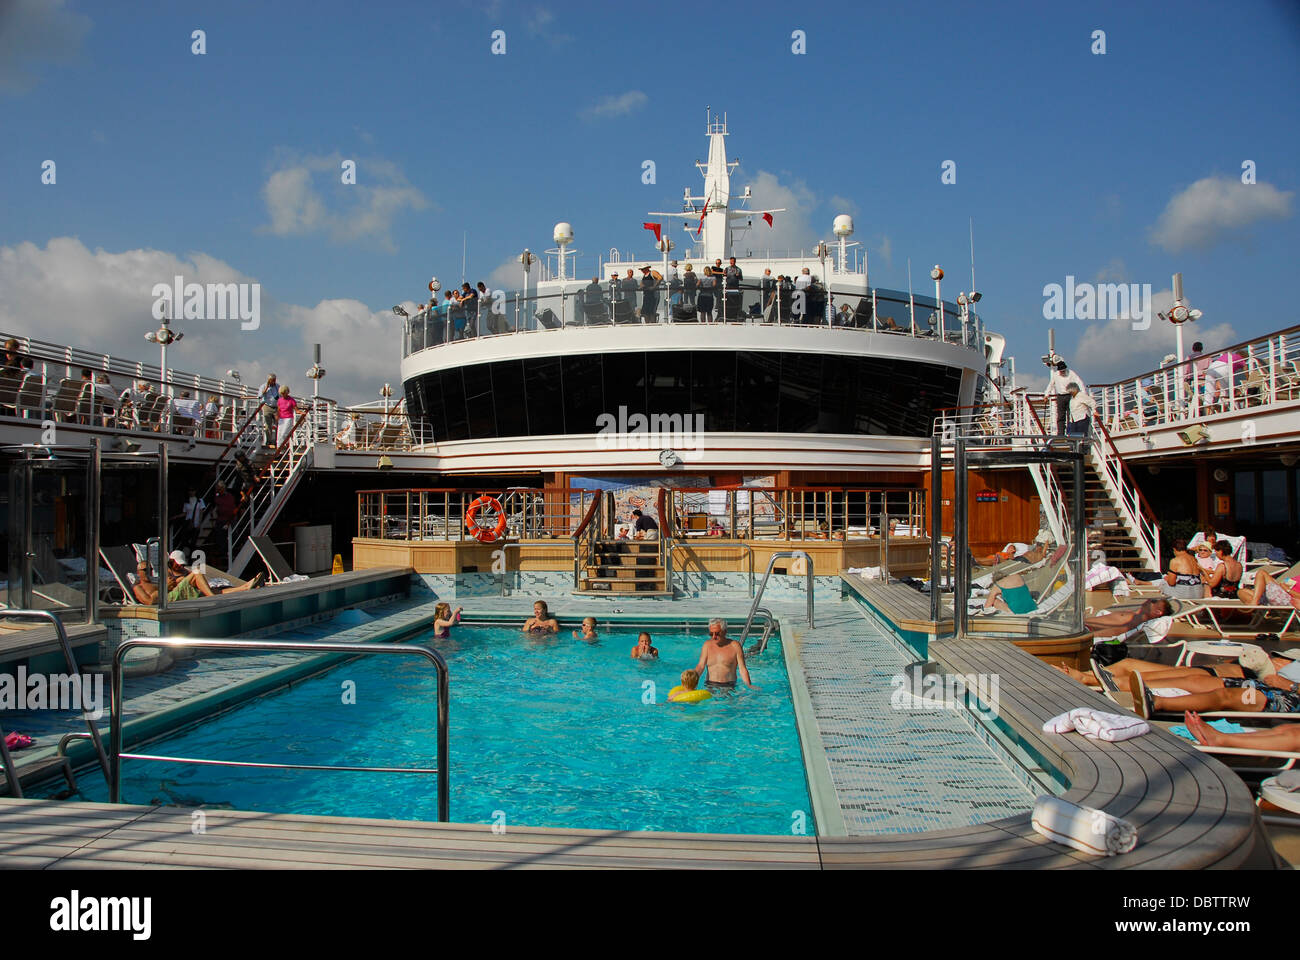 Swimming pool on the Cunard Line Queen Elizabeth Ship Stock Photo: 58938653 - Alamy